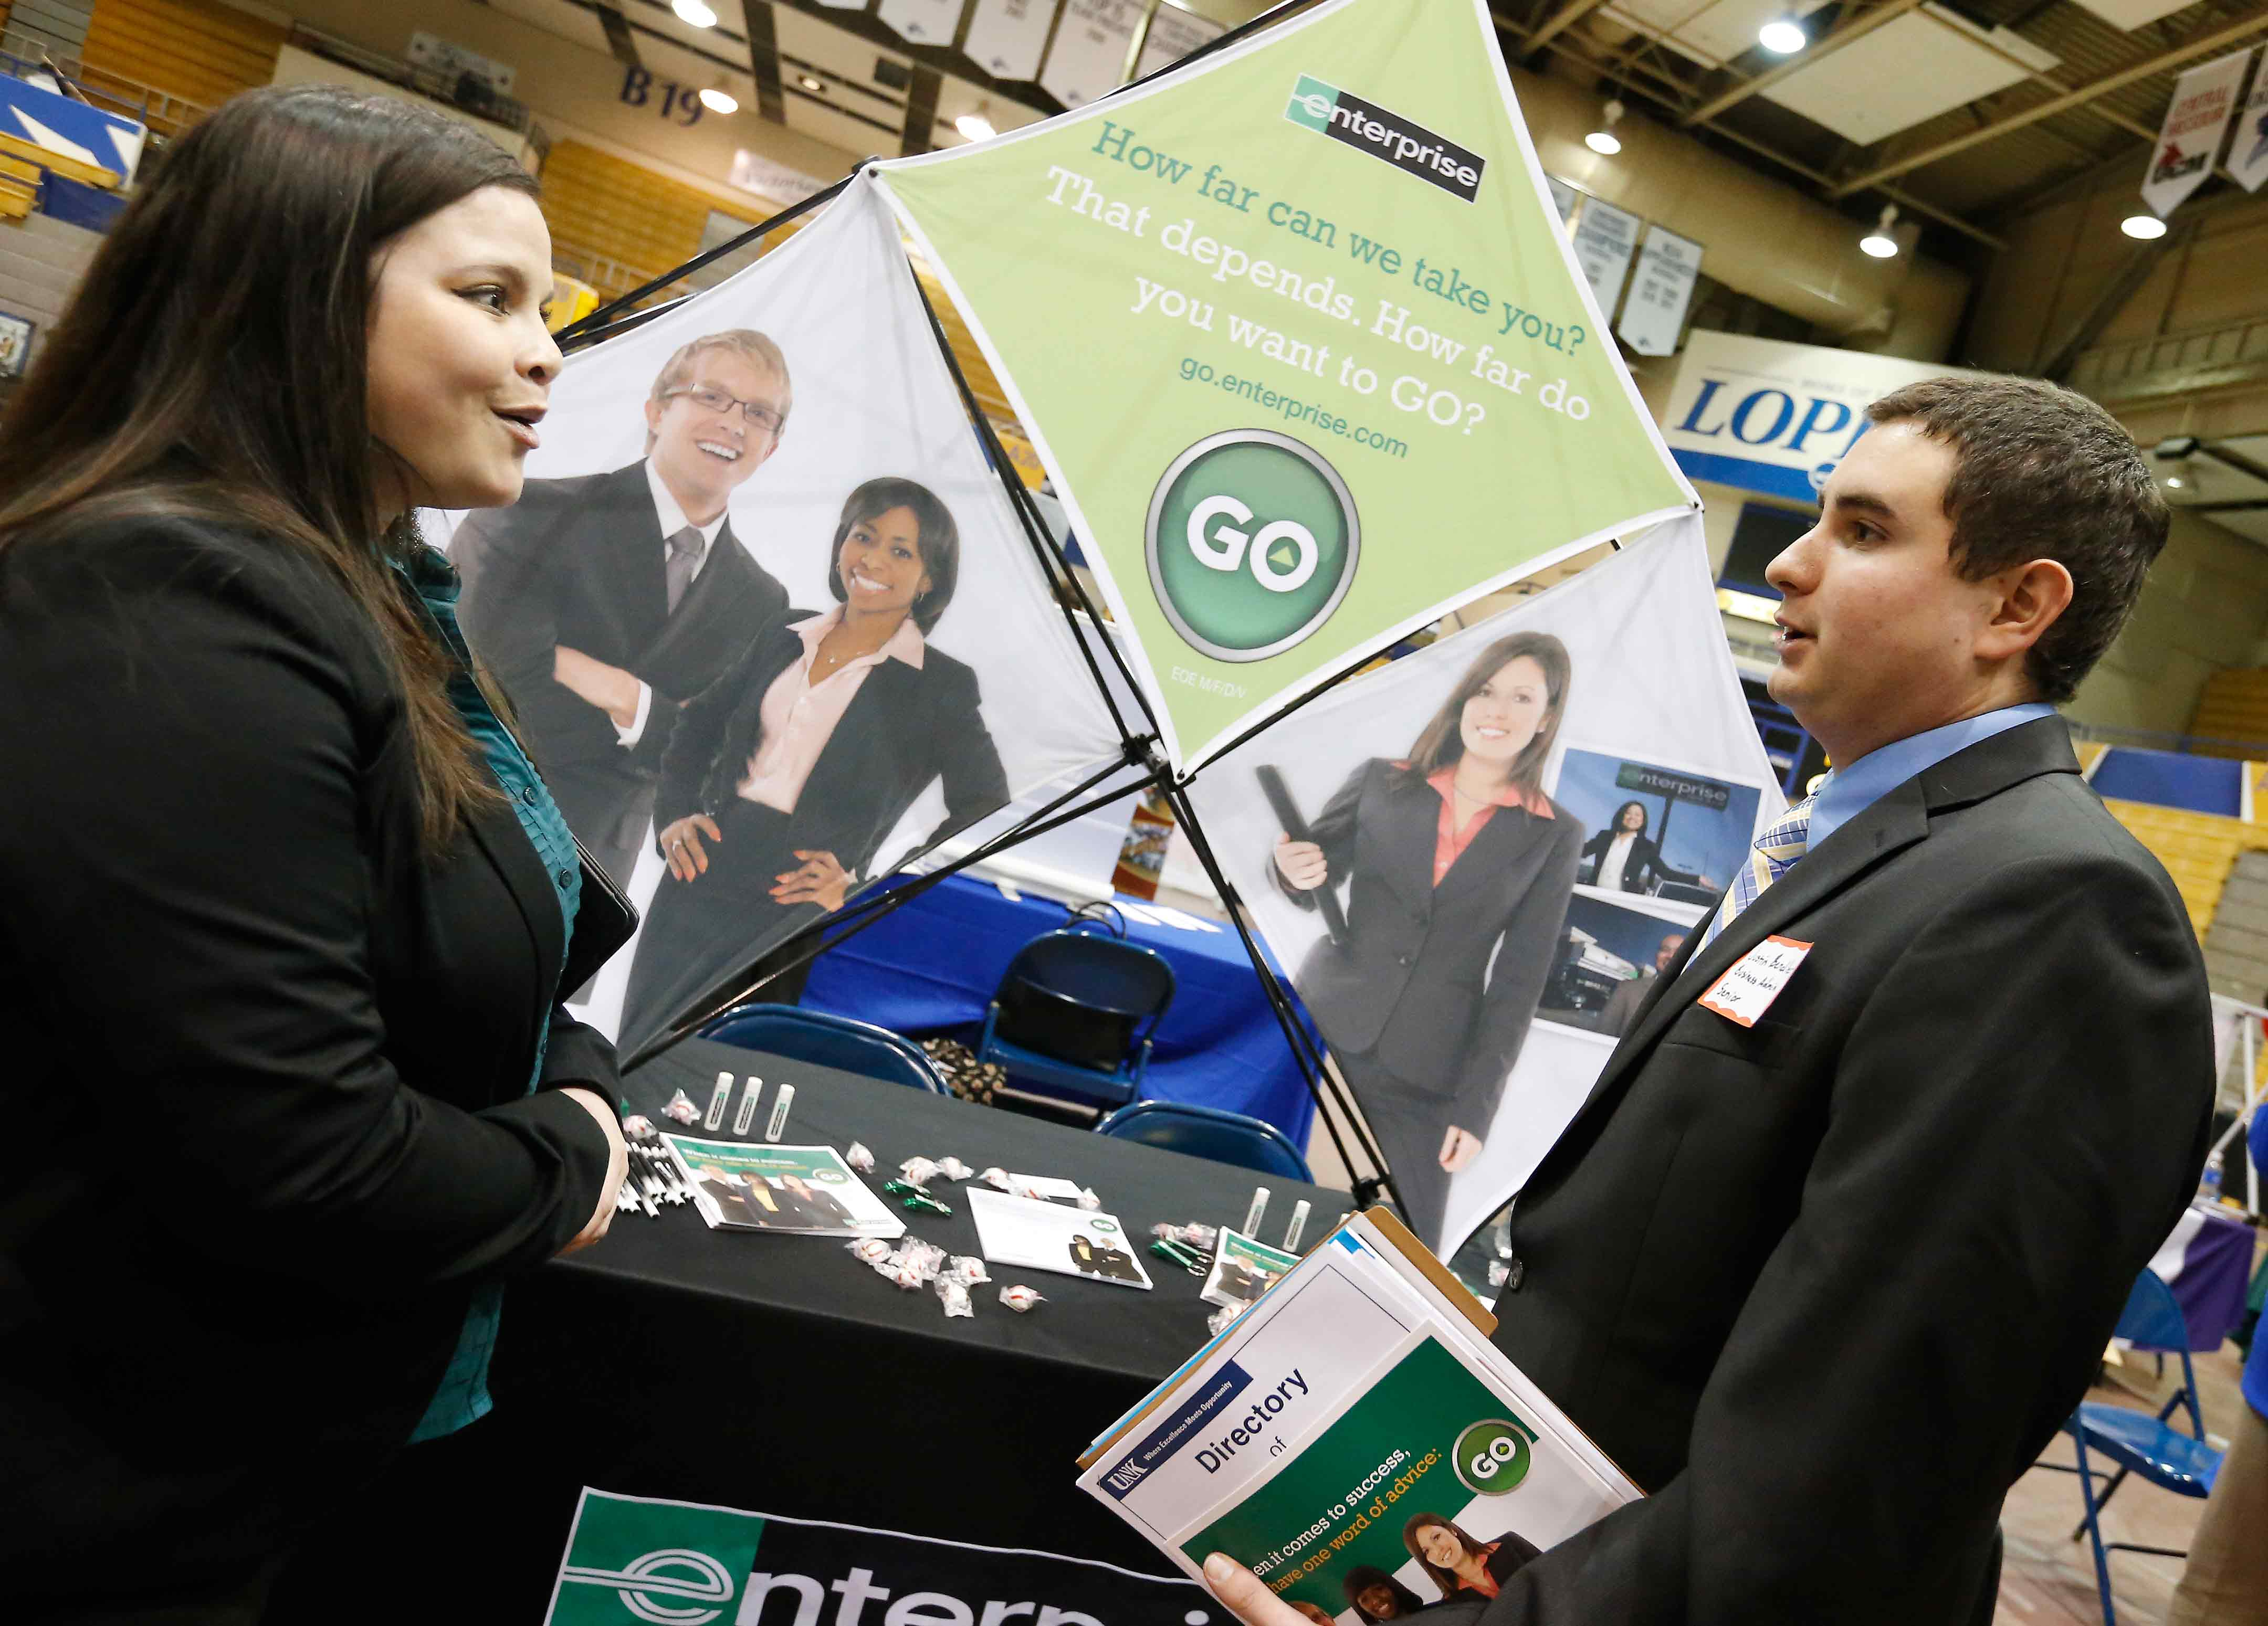 career days allow students to explore employment opportunities 10 juniors and seniors from all majors can attend the college of business and technology networking reception business professional attire is required and